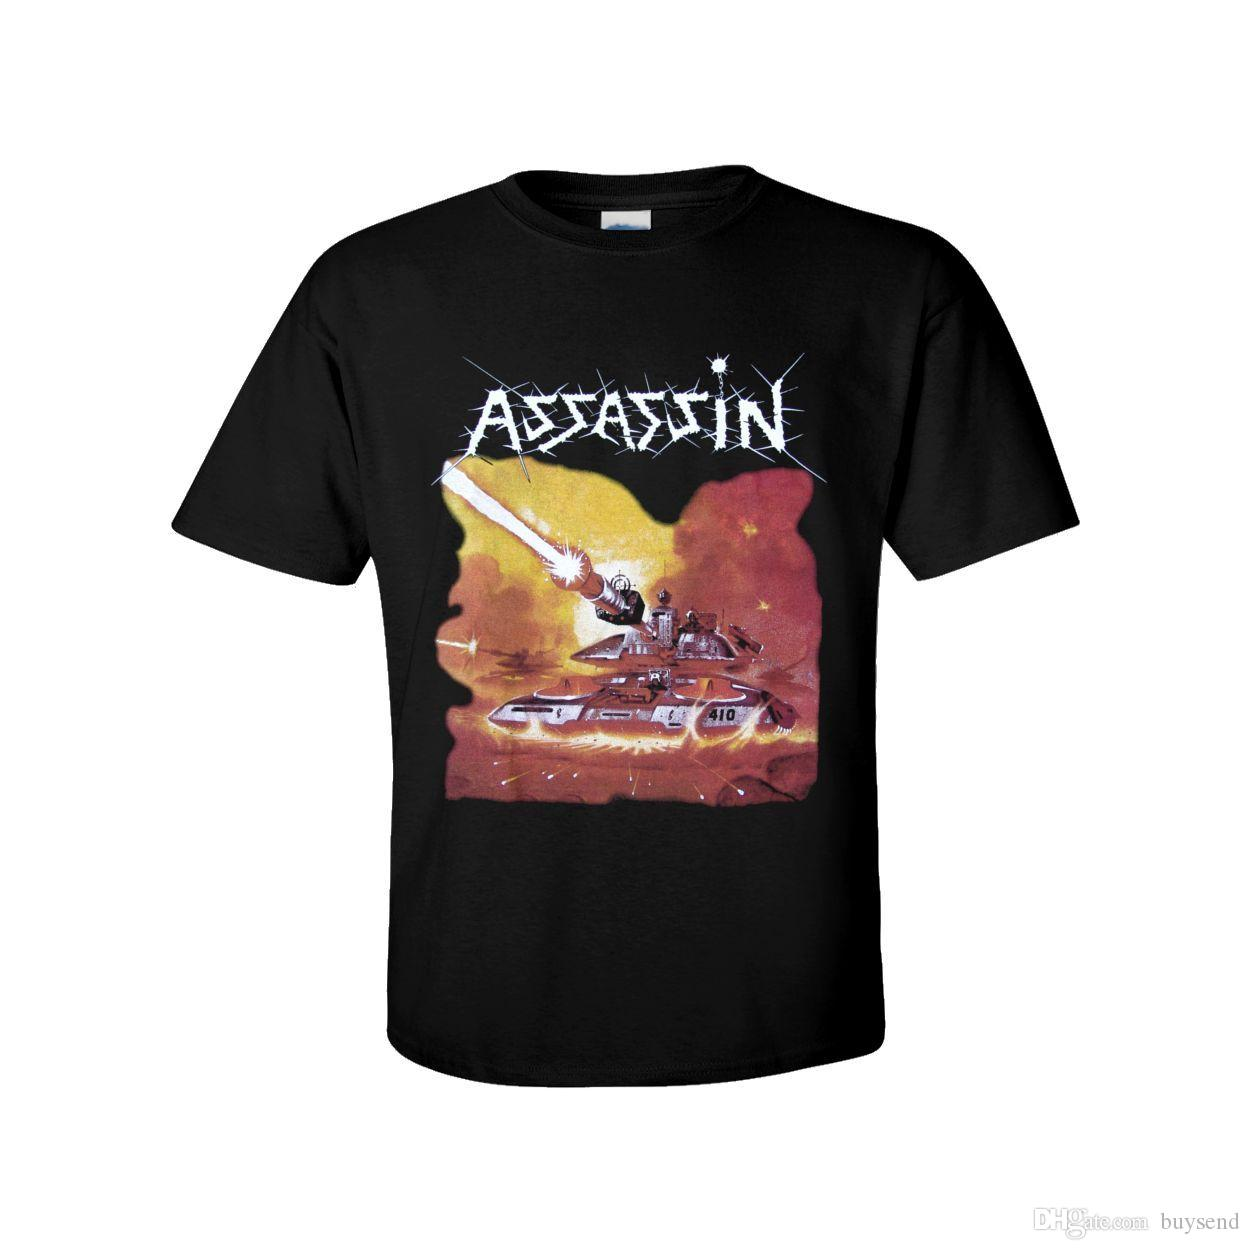 T-shirt officiel ASSASSIN LA TERRE À VENIR - Thrash Metal teutonique